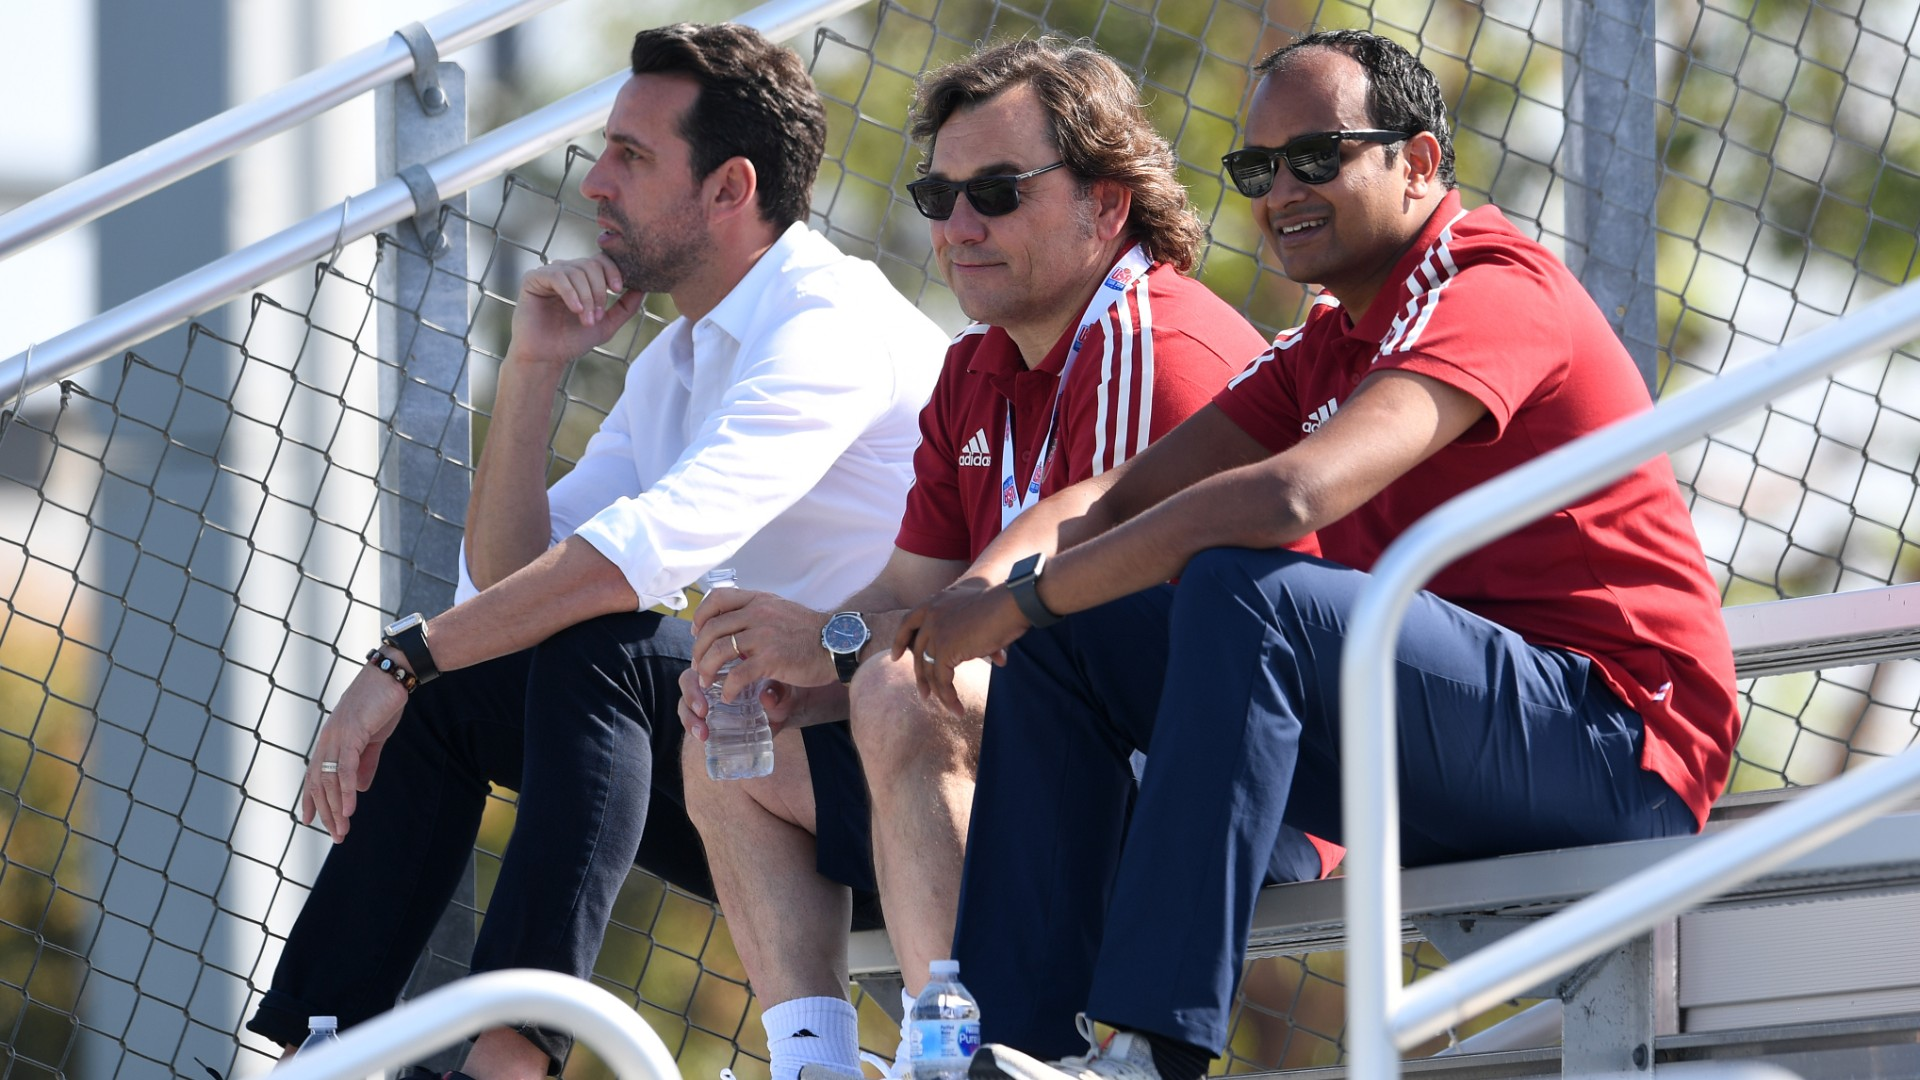 'There is no bullsh*t with him' - Inside Raul Sanllehi's Arsenal revolution